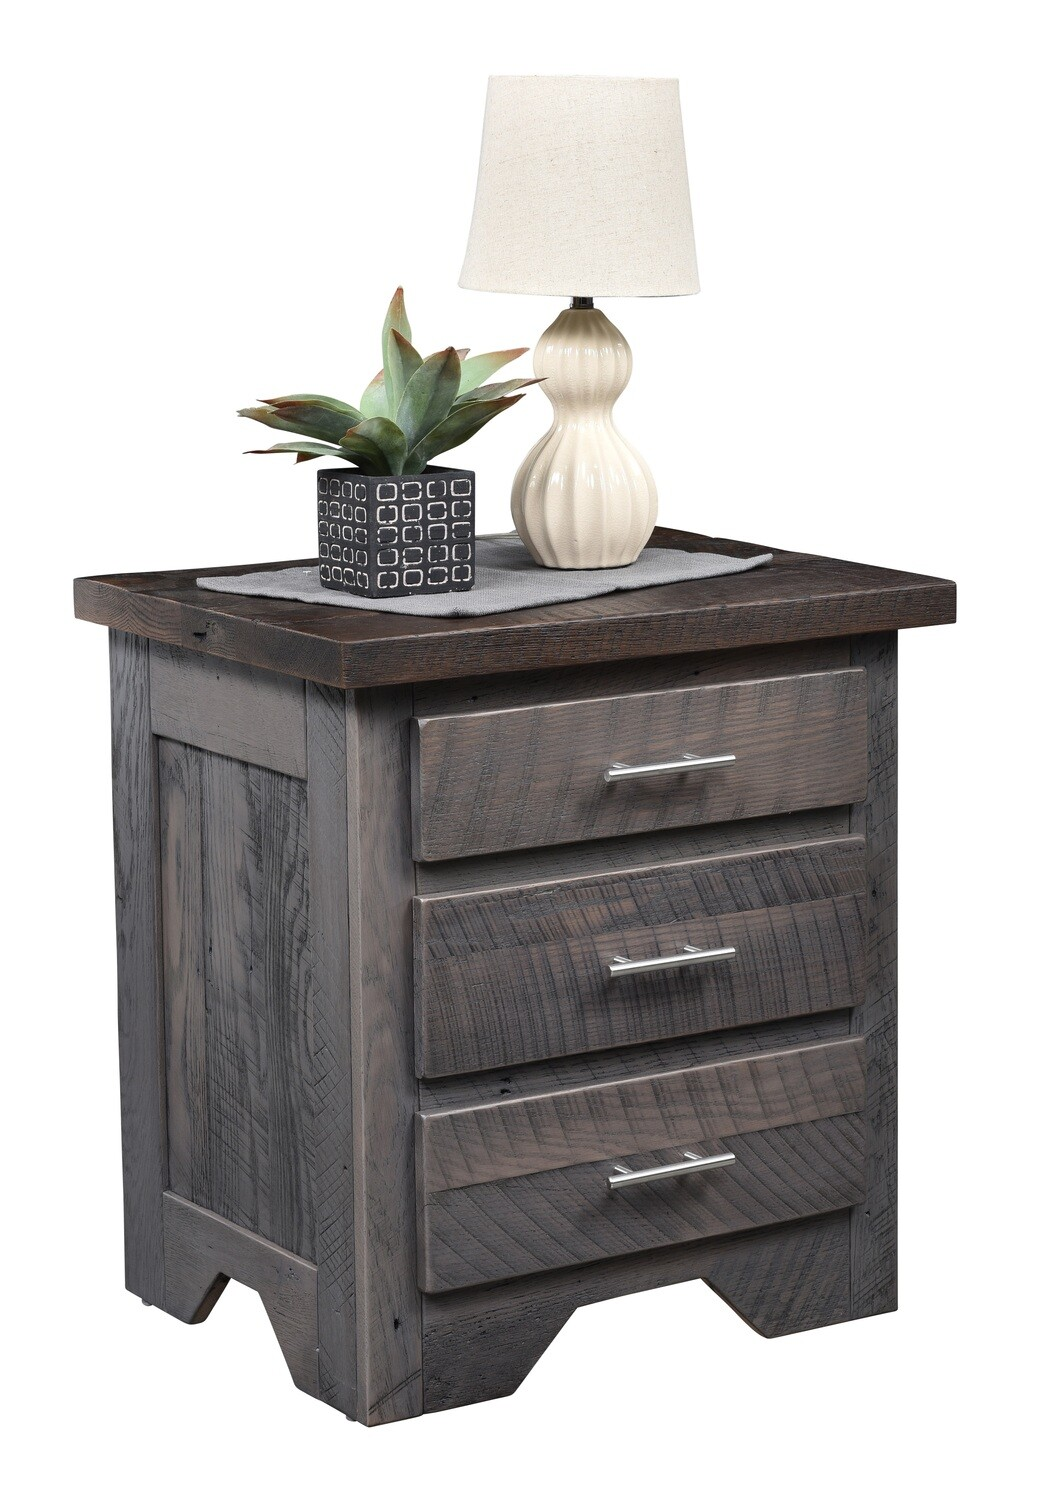 Urban Barnwood London Fog 3 Drawer Night Stand